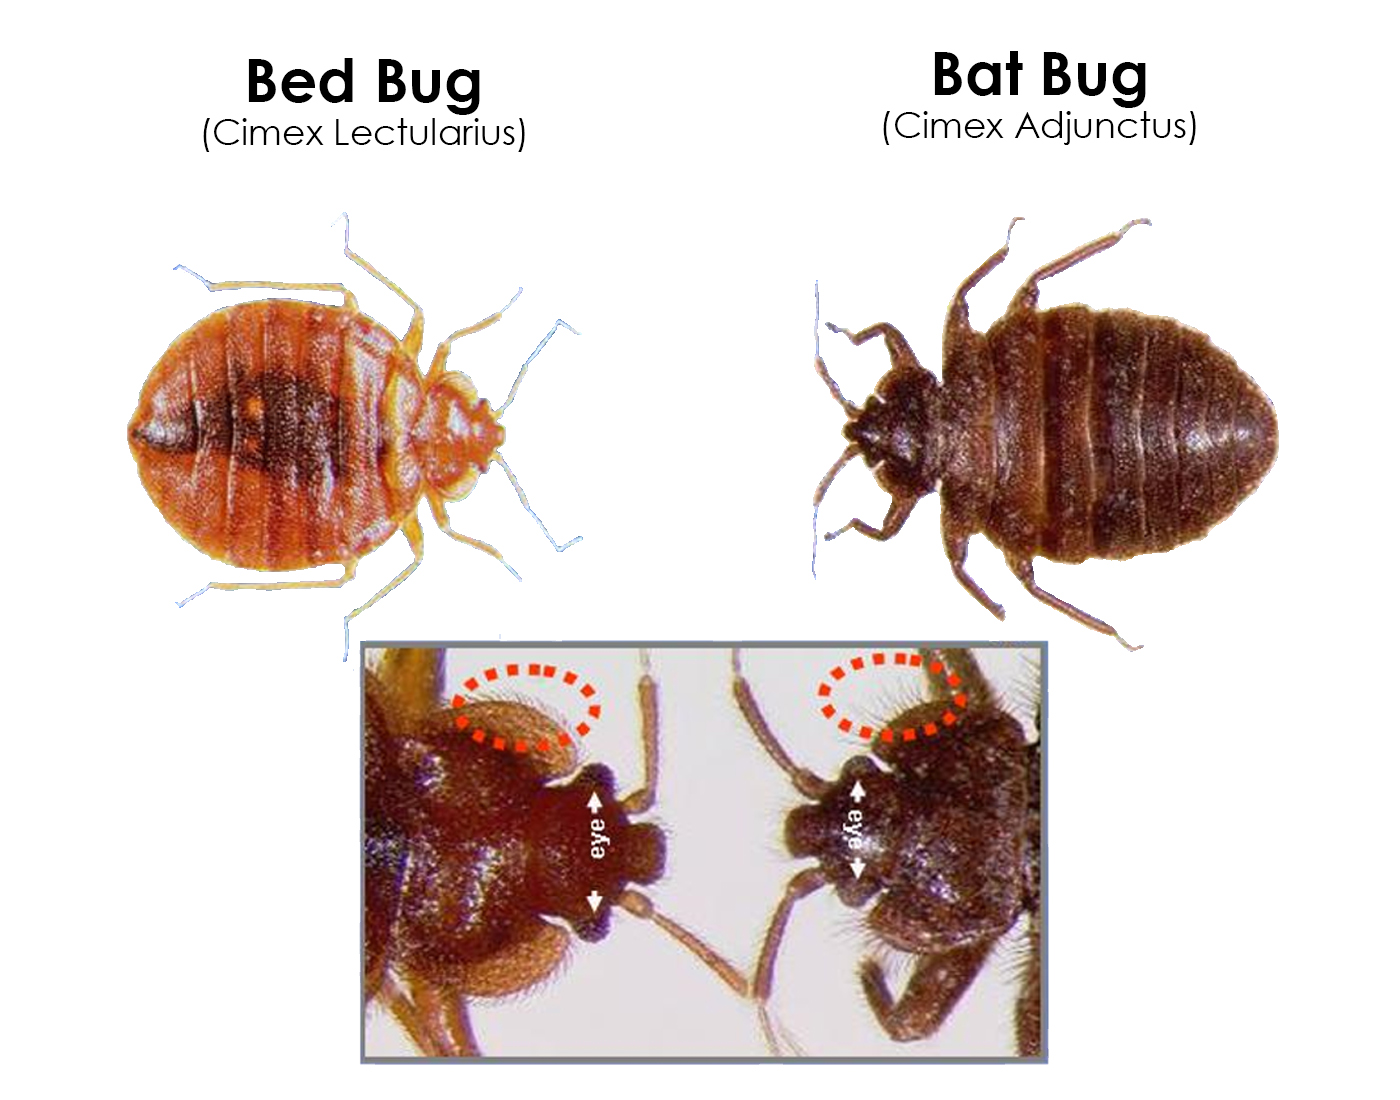 exterminators sample your bug extreme bed control pest solution heat banner